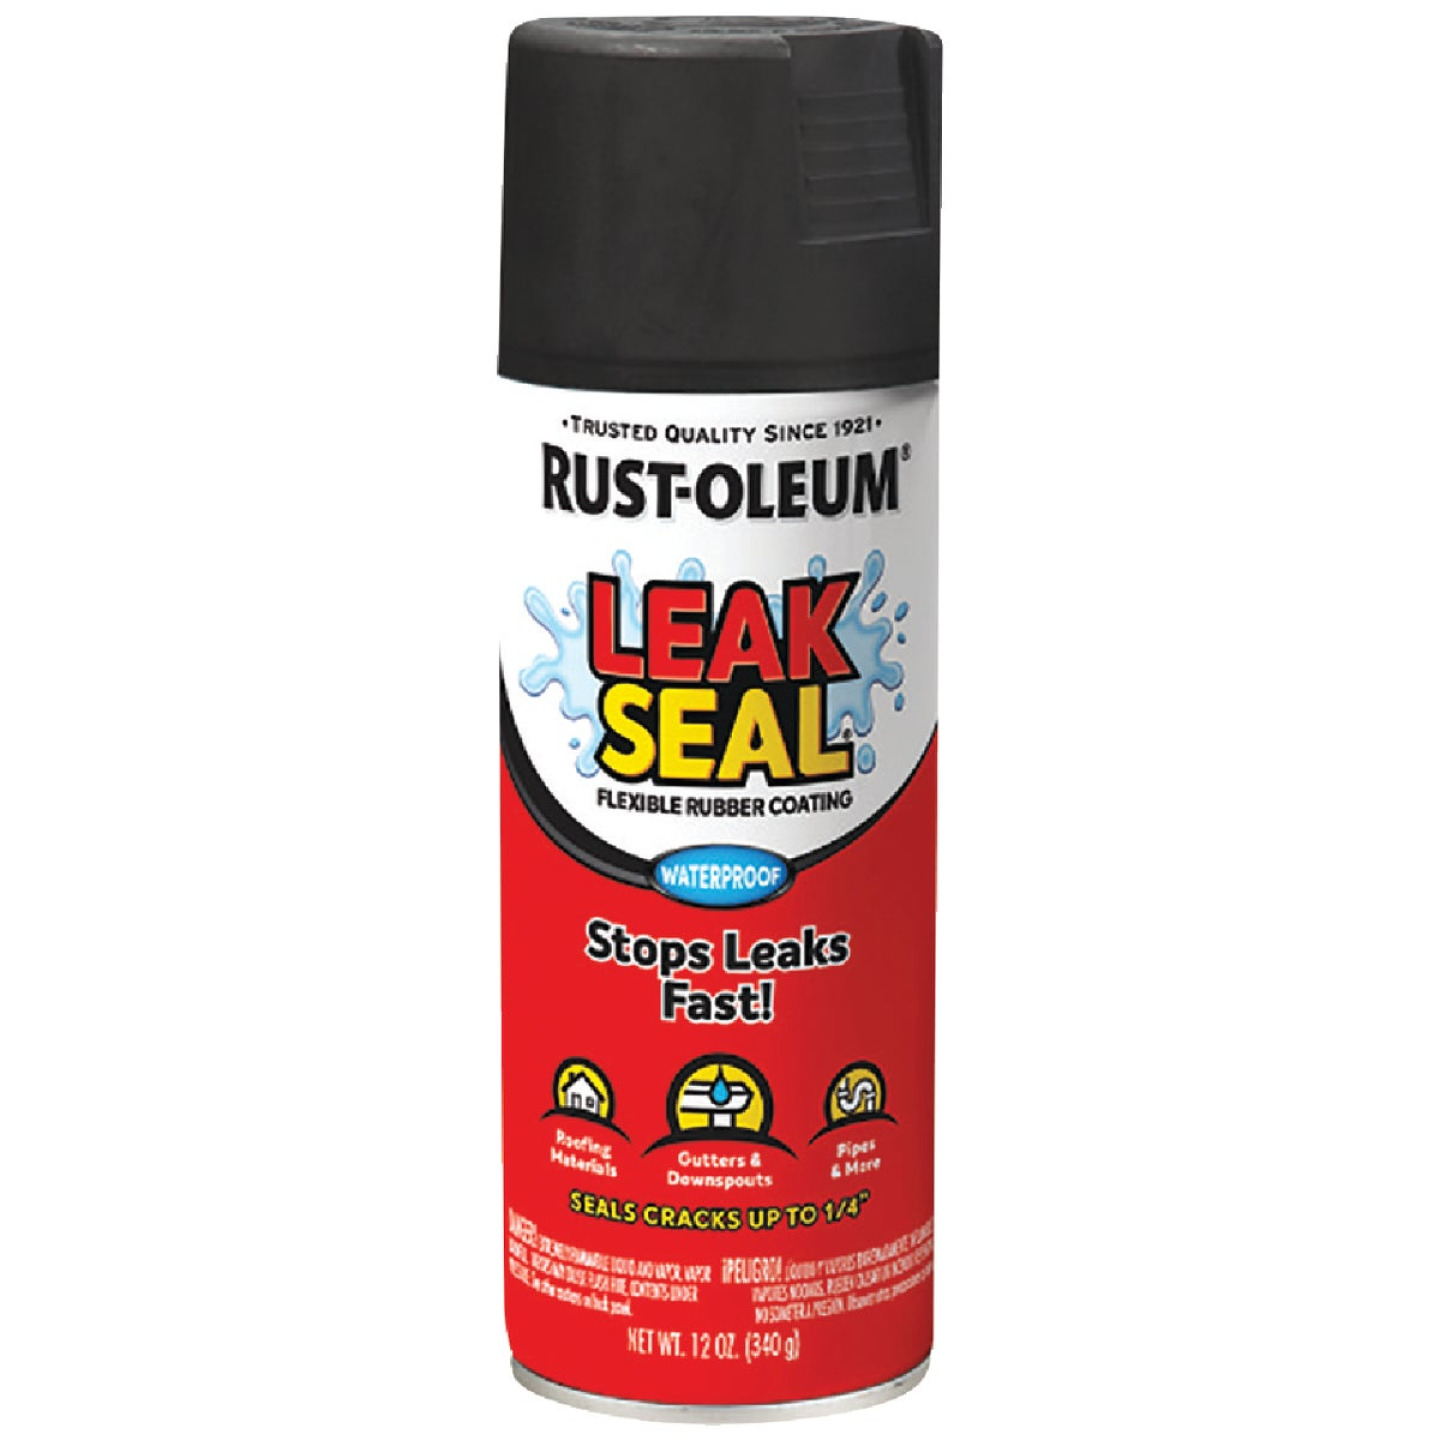 Rust-Oleum LeakSeal 12 Oz. Flexible Rubber Coating, Black Image 1